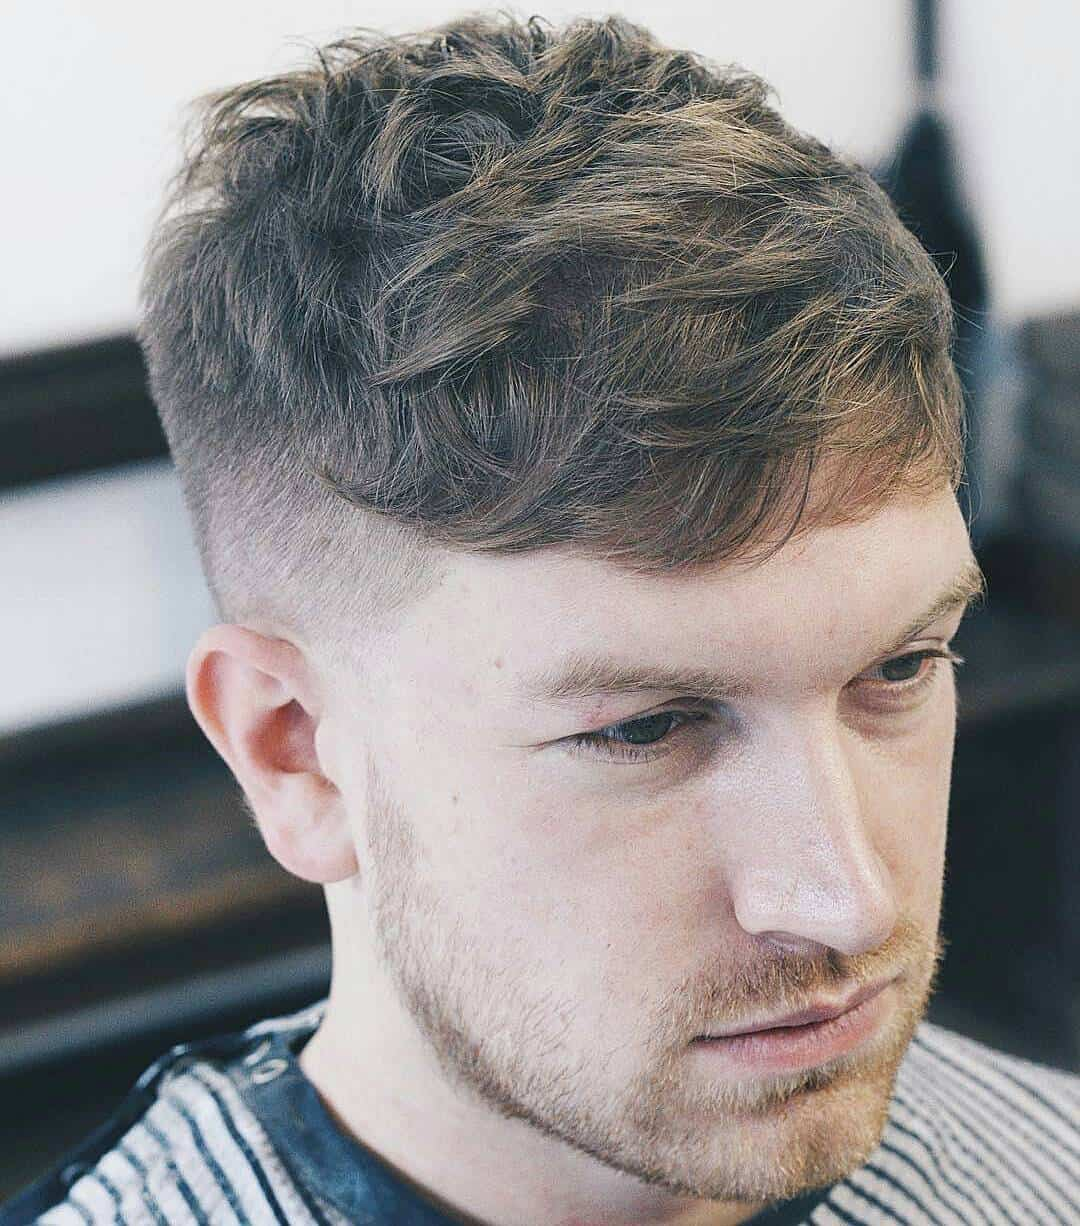 Men Short Hairstyles | Trend Hairstyle And Haircut Ideas